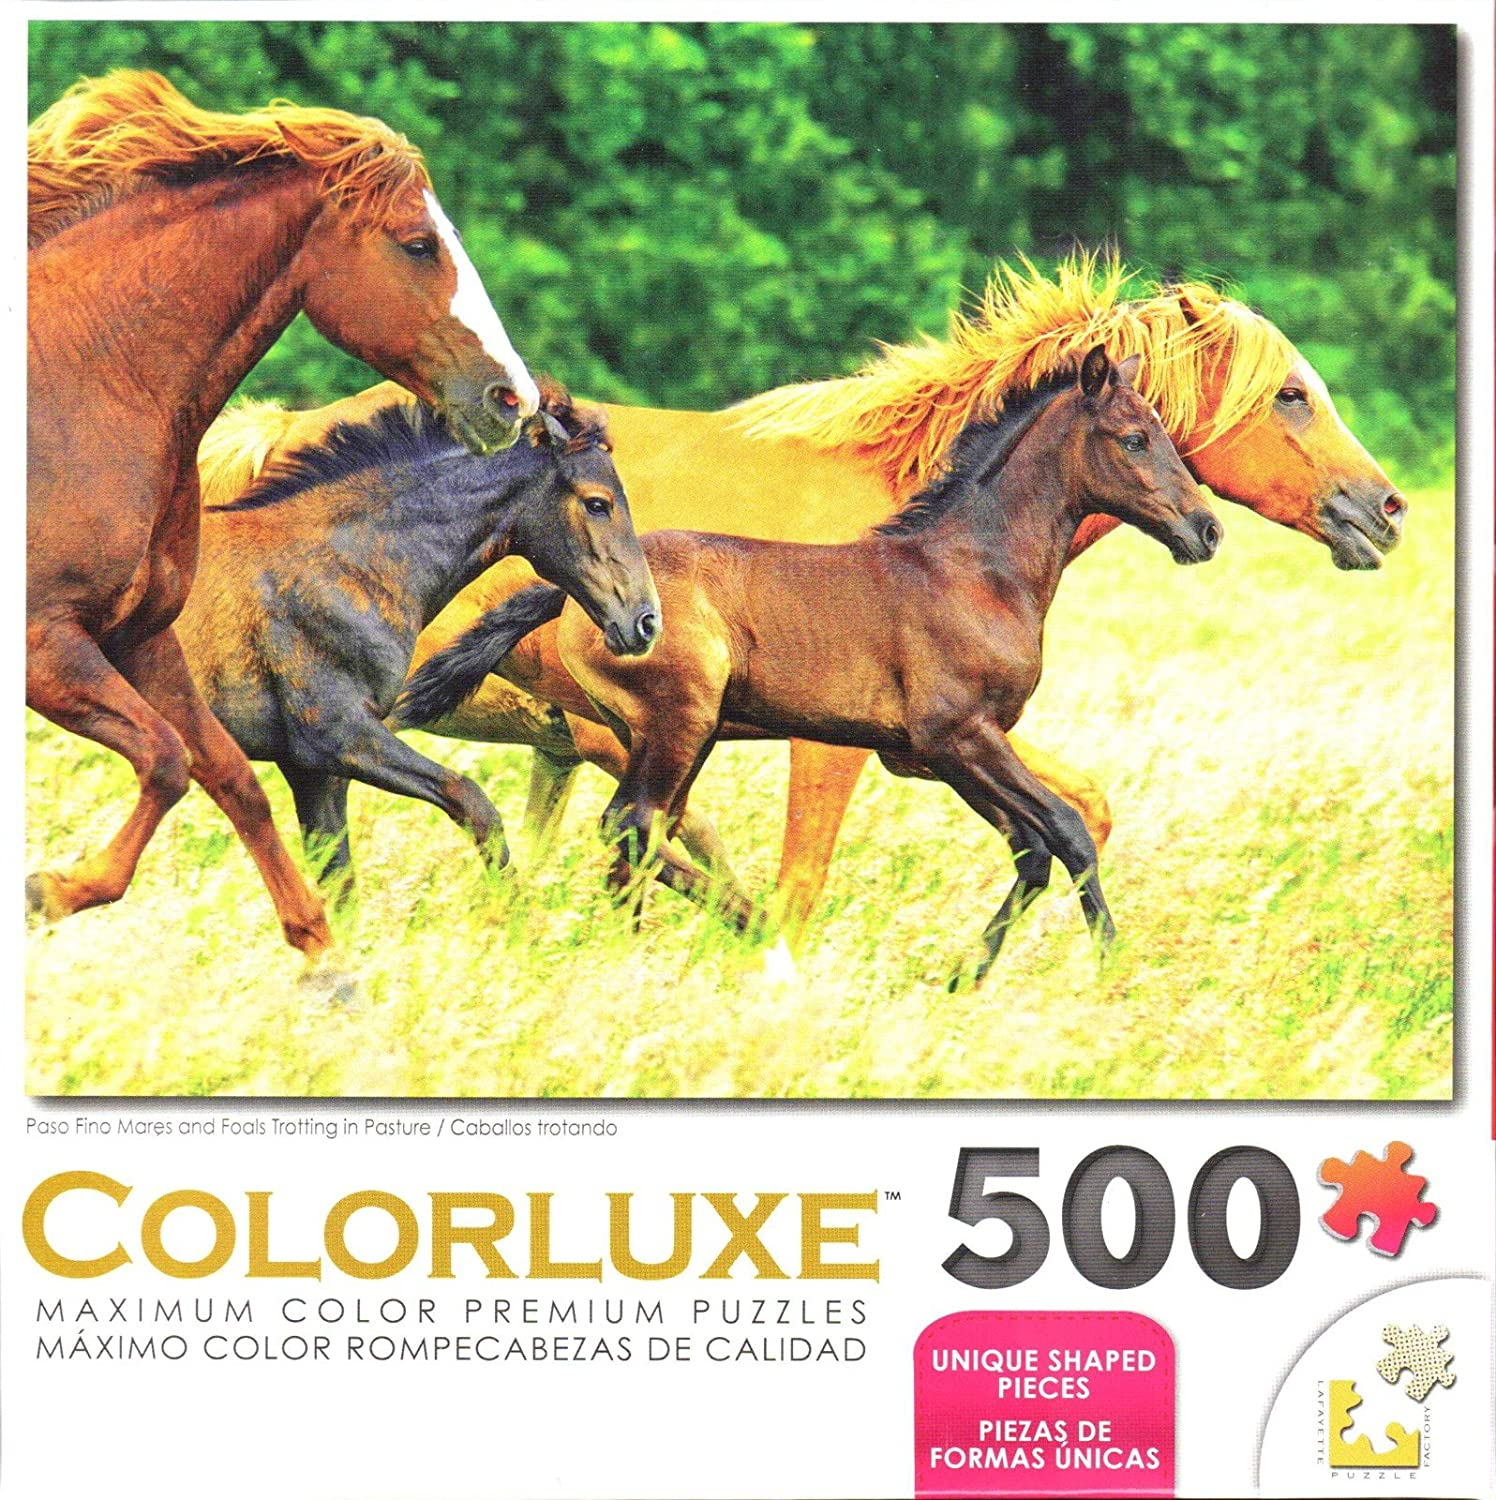 George Colorluxe 500 Piece Puzzle - Paso Fino Mares and Foals Trotting in Pasture